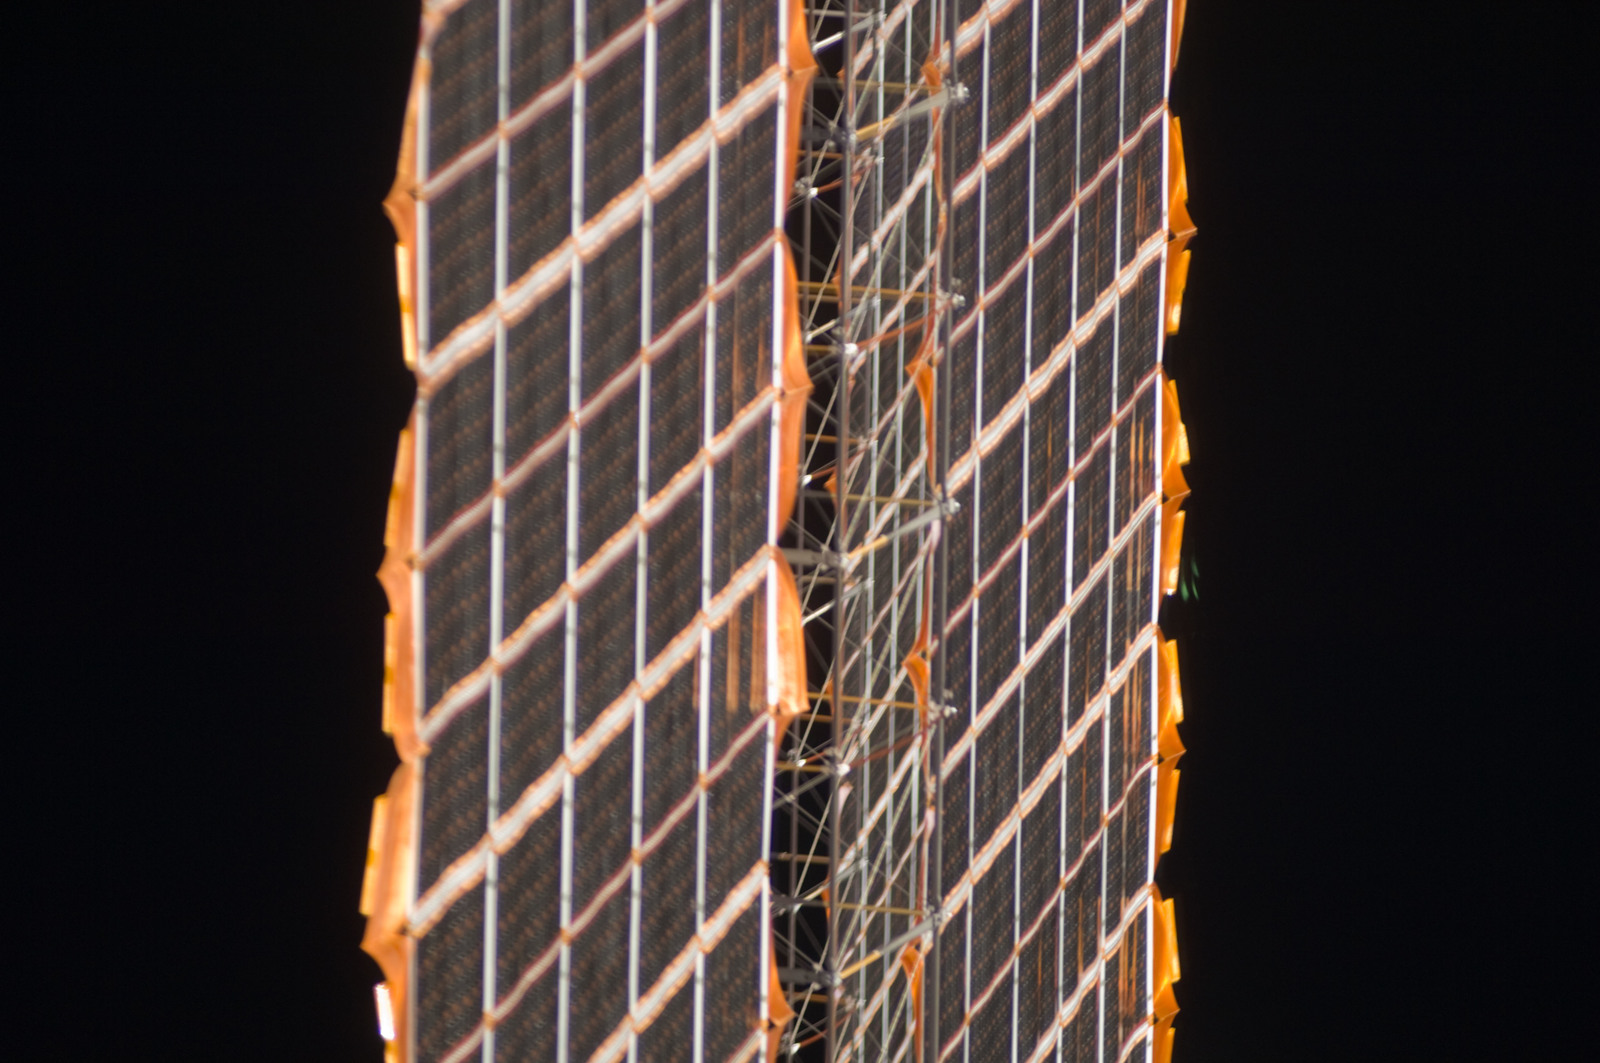 S134E009927 - STS-134 - Close-up view of Photovoltaic SAW